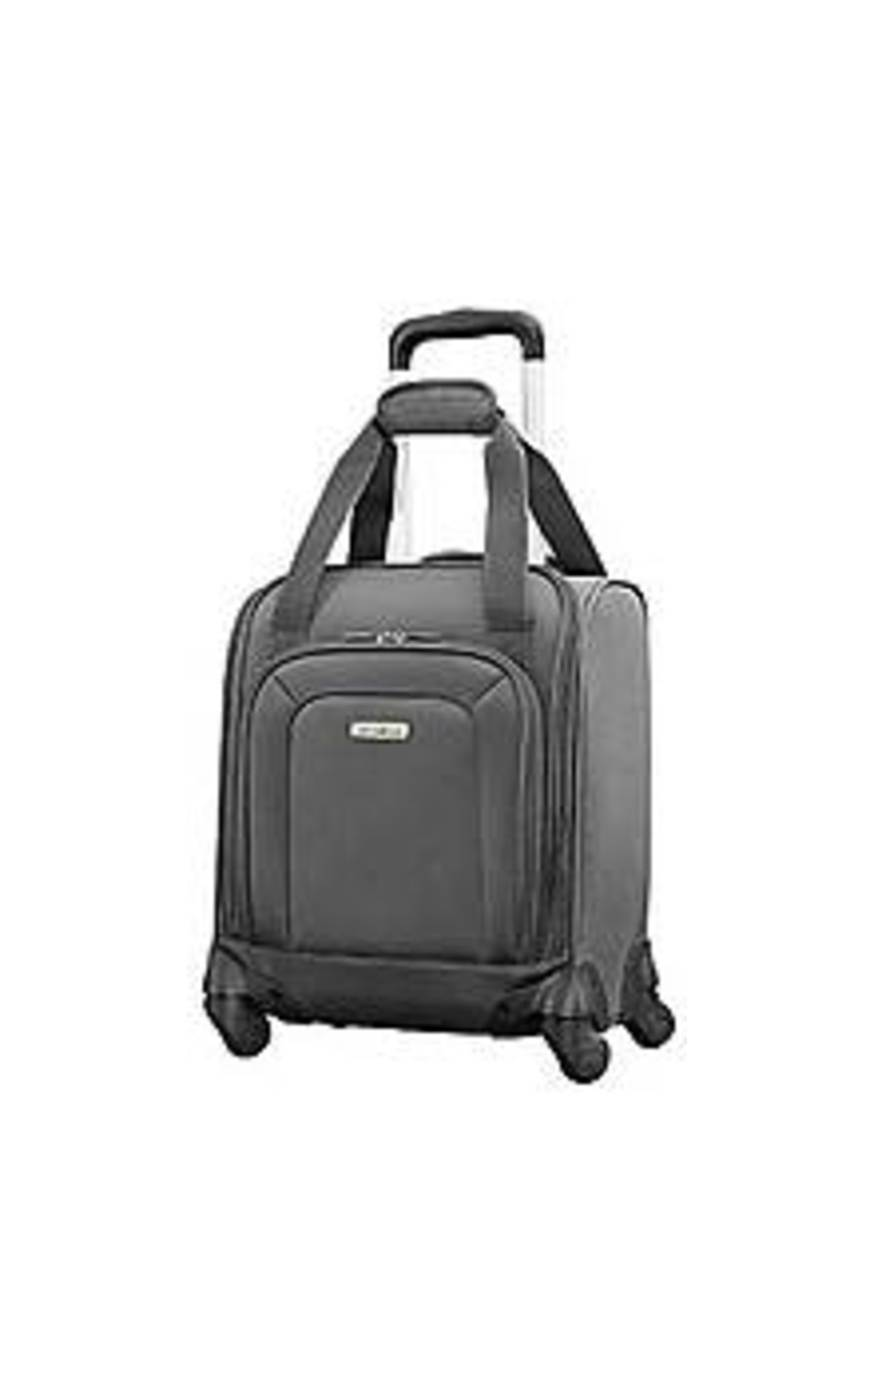 Samsonite_103471-1174_Underseater_Spinner_Rolling_Suitcase_-_Charcoal